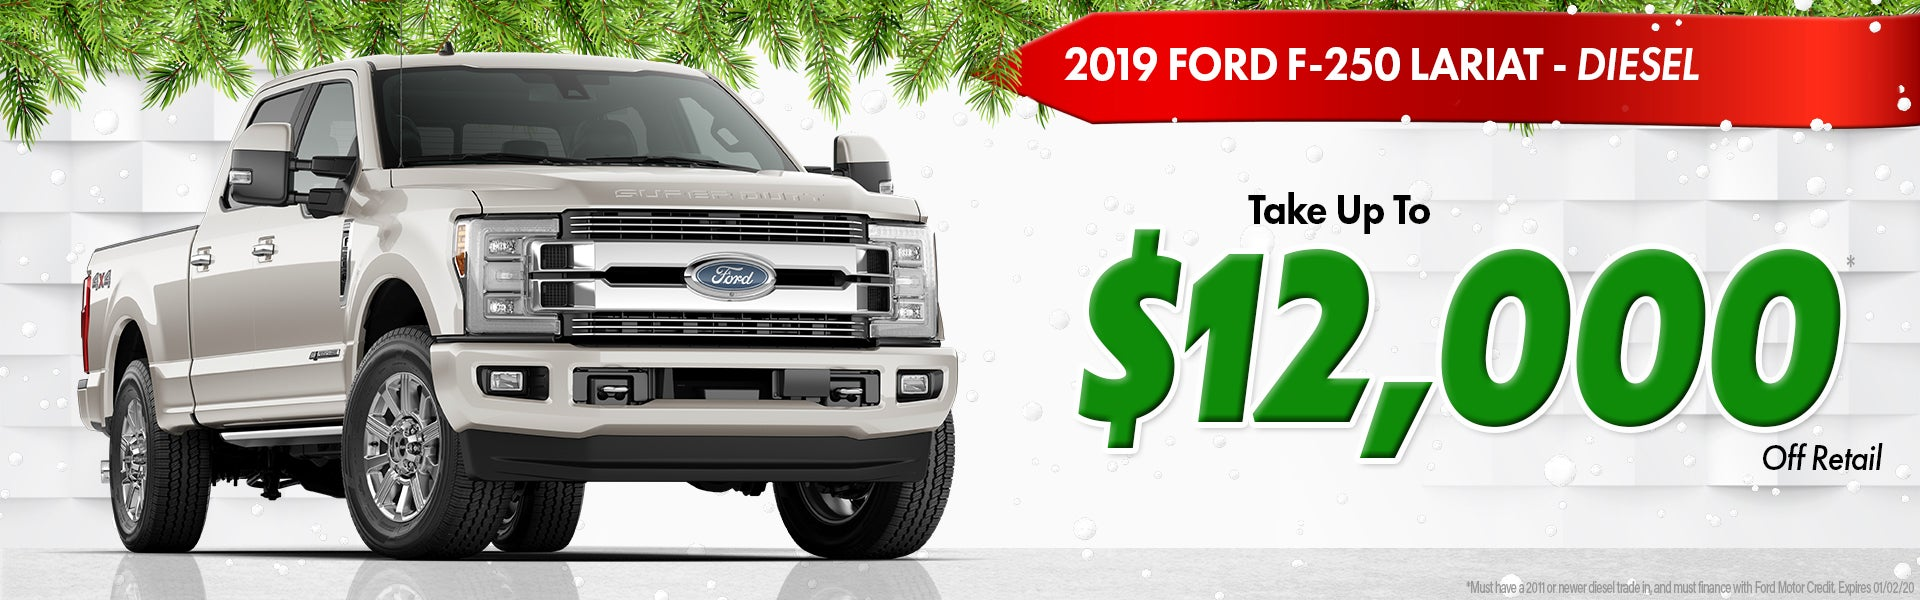 Ford Dealer Locator >> Ford Dealer In Southern Pines Nc Used Cars Southern Pines